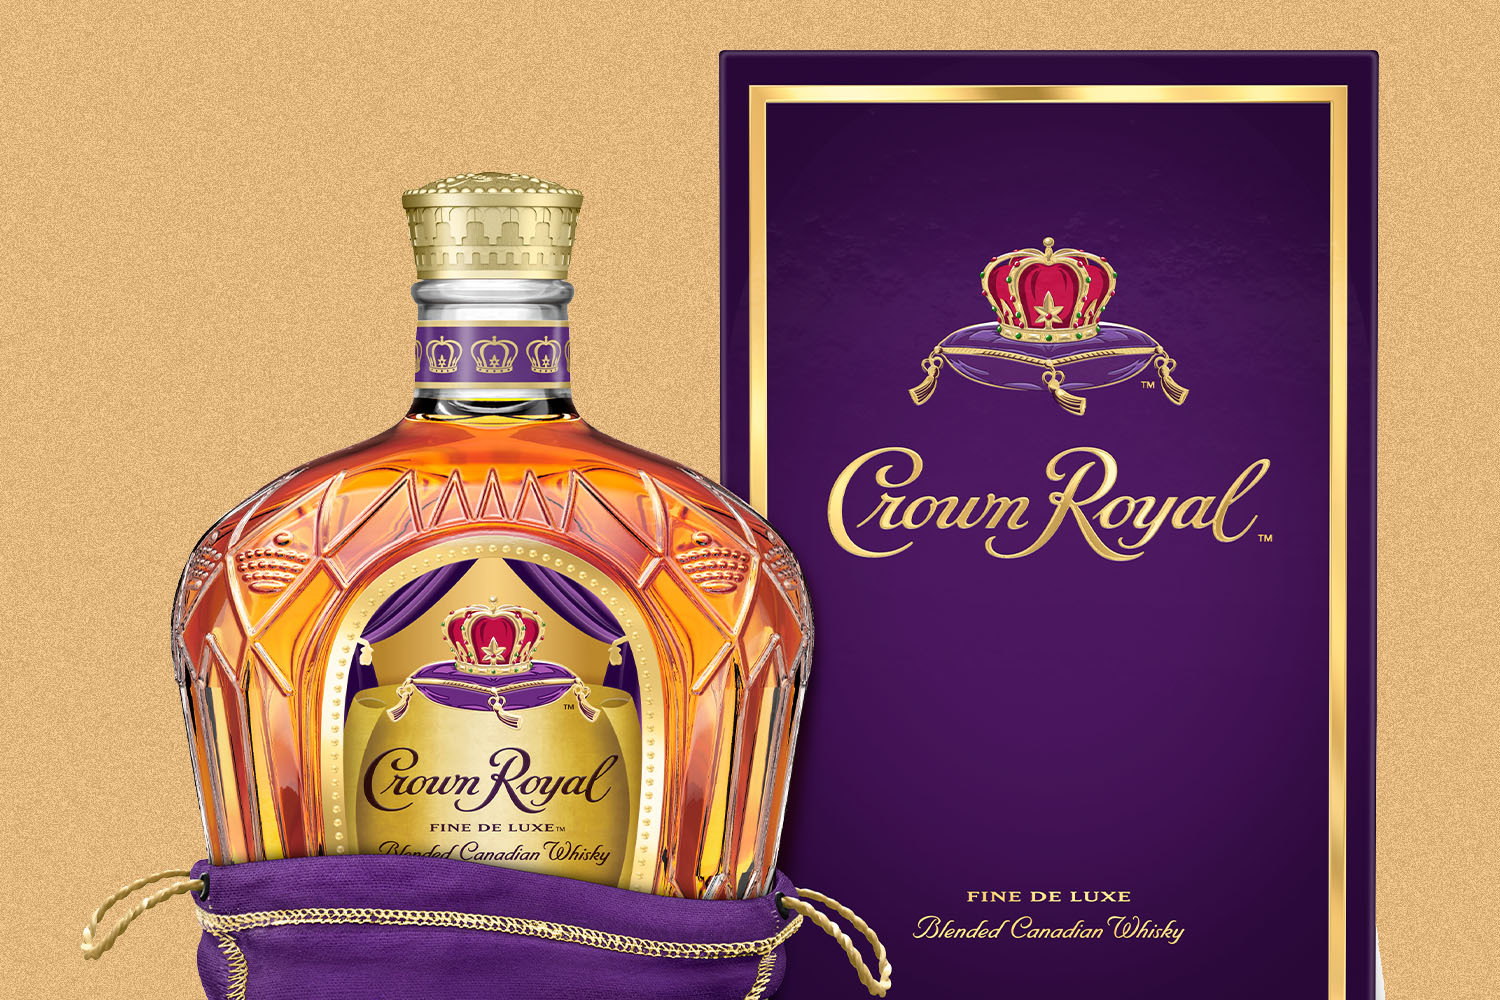 Crown Royal bottle and box